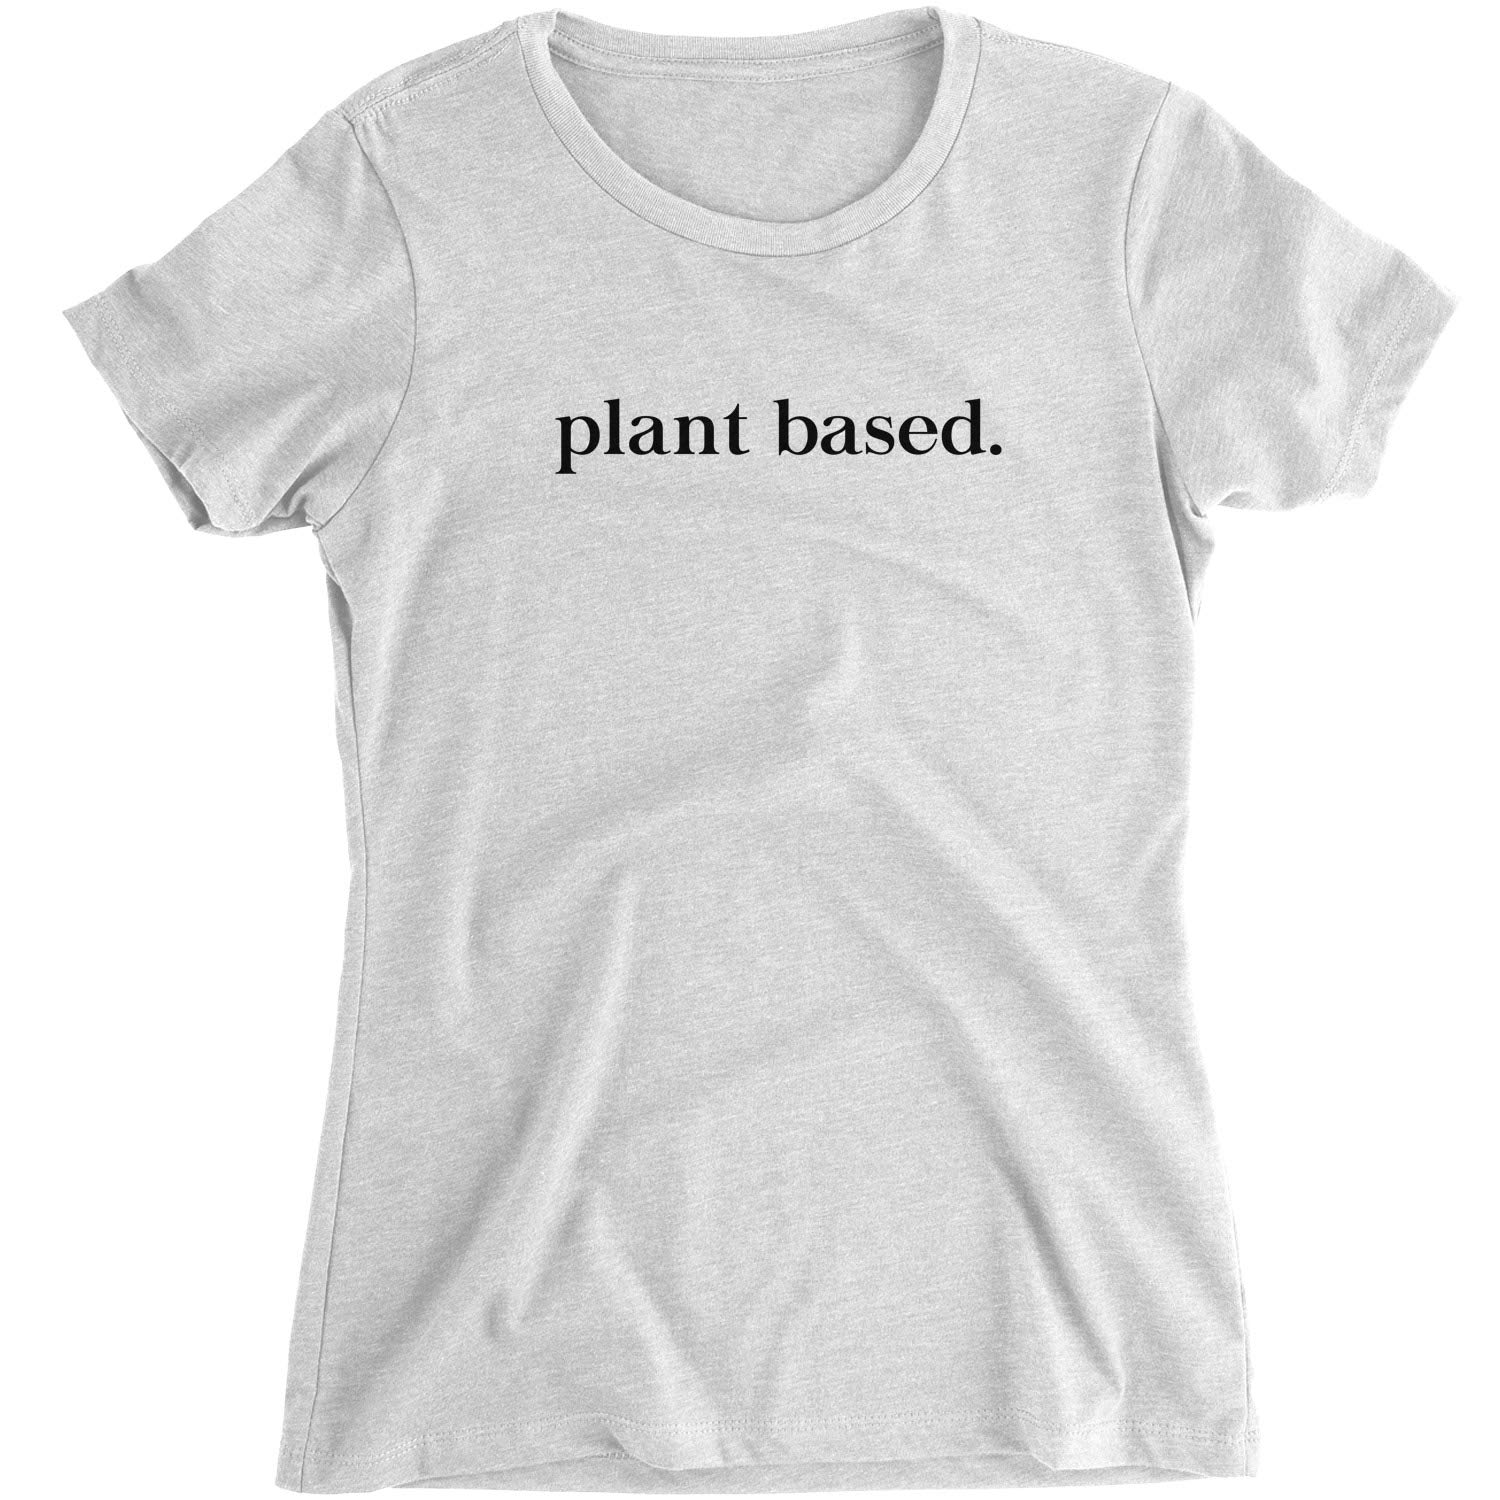 Ethical Sustainable Plant Based Fitted Top Vegan Organic Cotton Womens T-Shirt